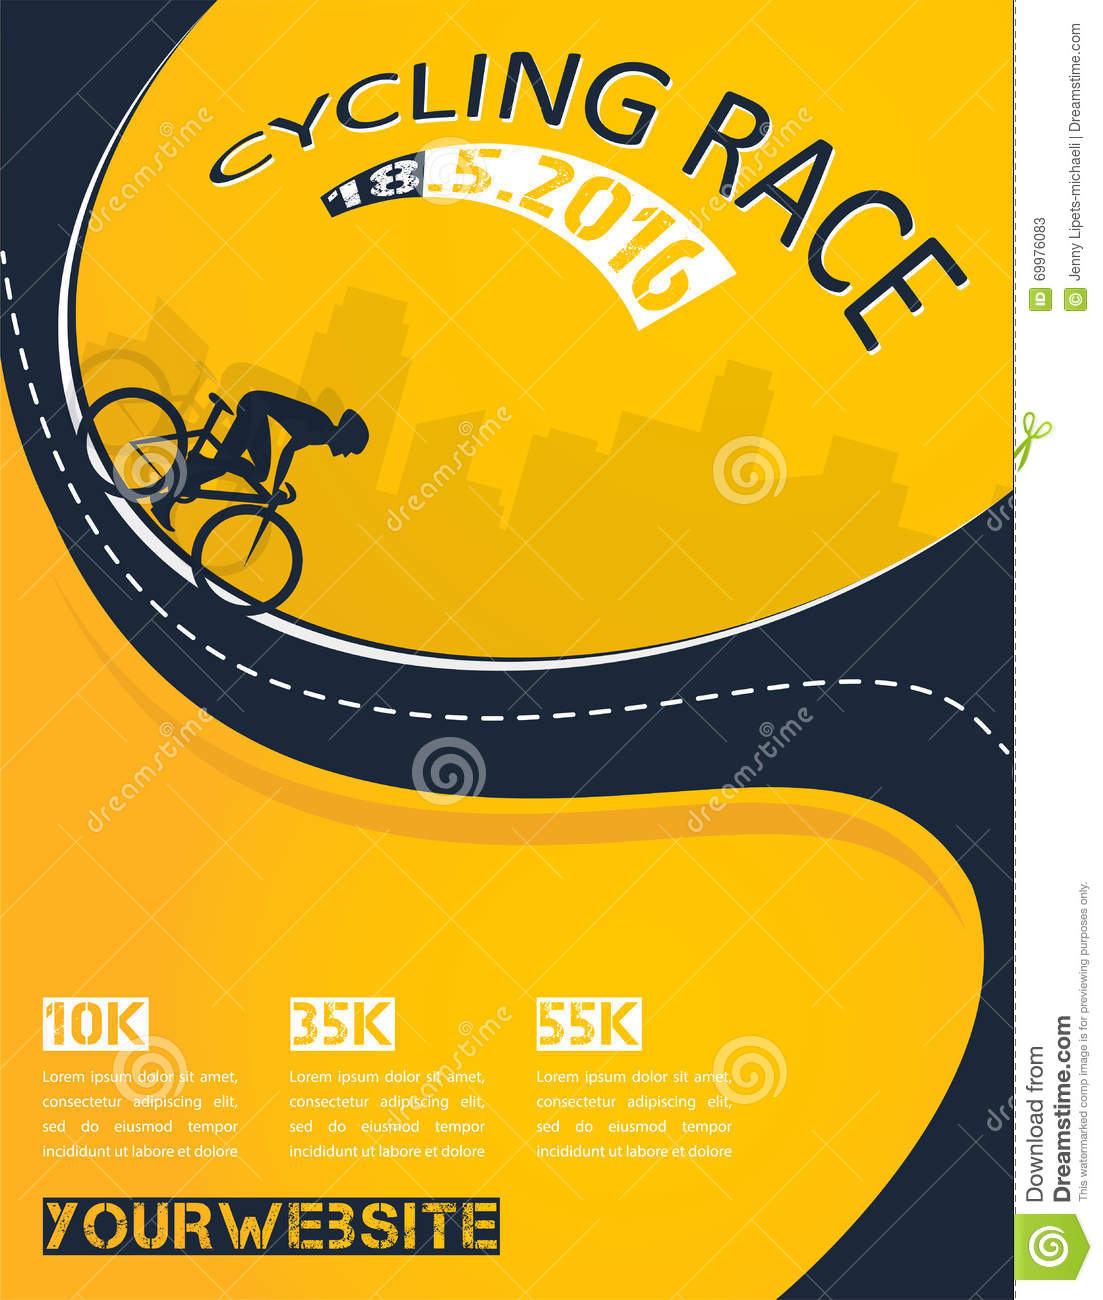 Poster design vector download - Vector Bicycle Race Event Poster Design Stock Vector